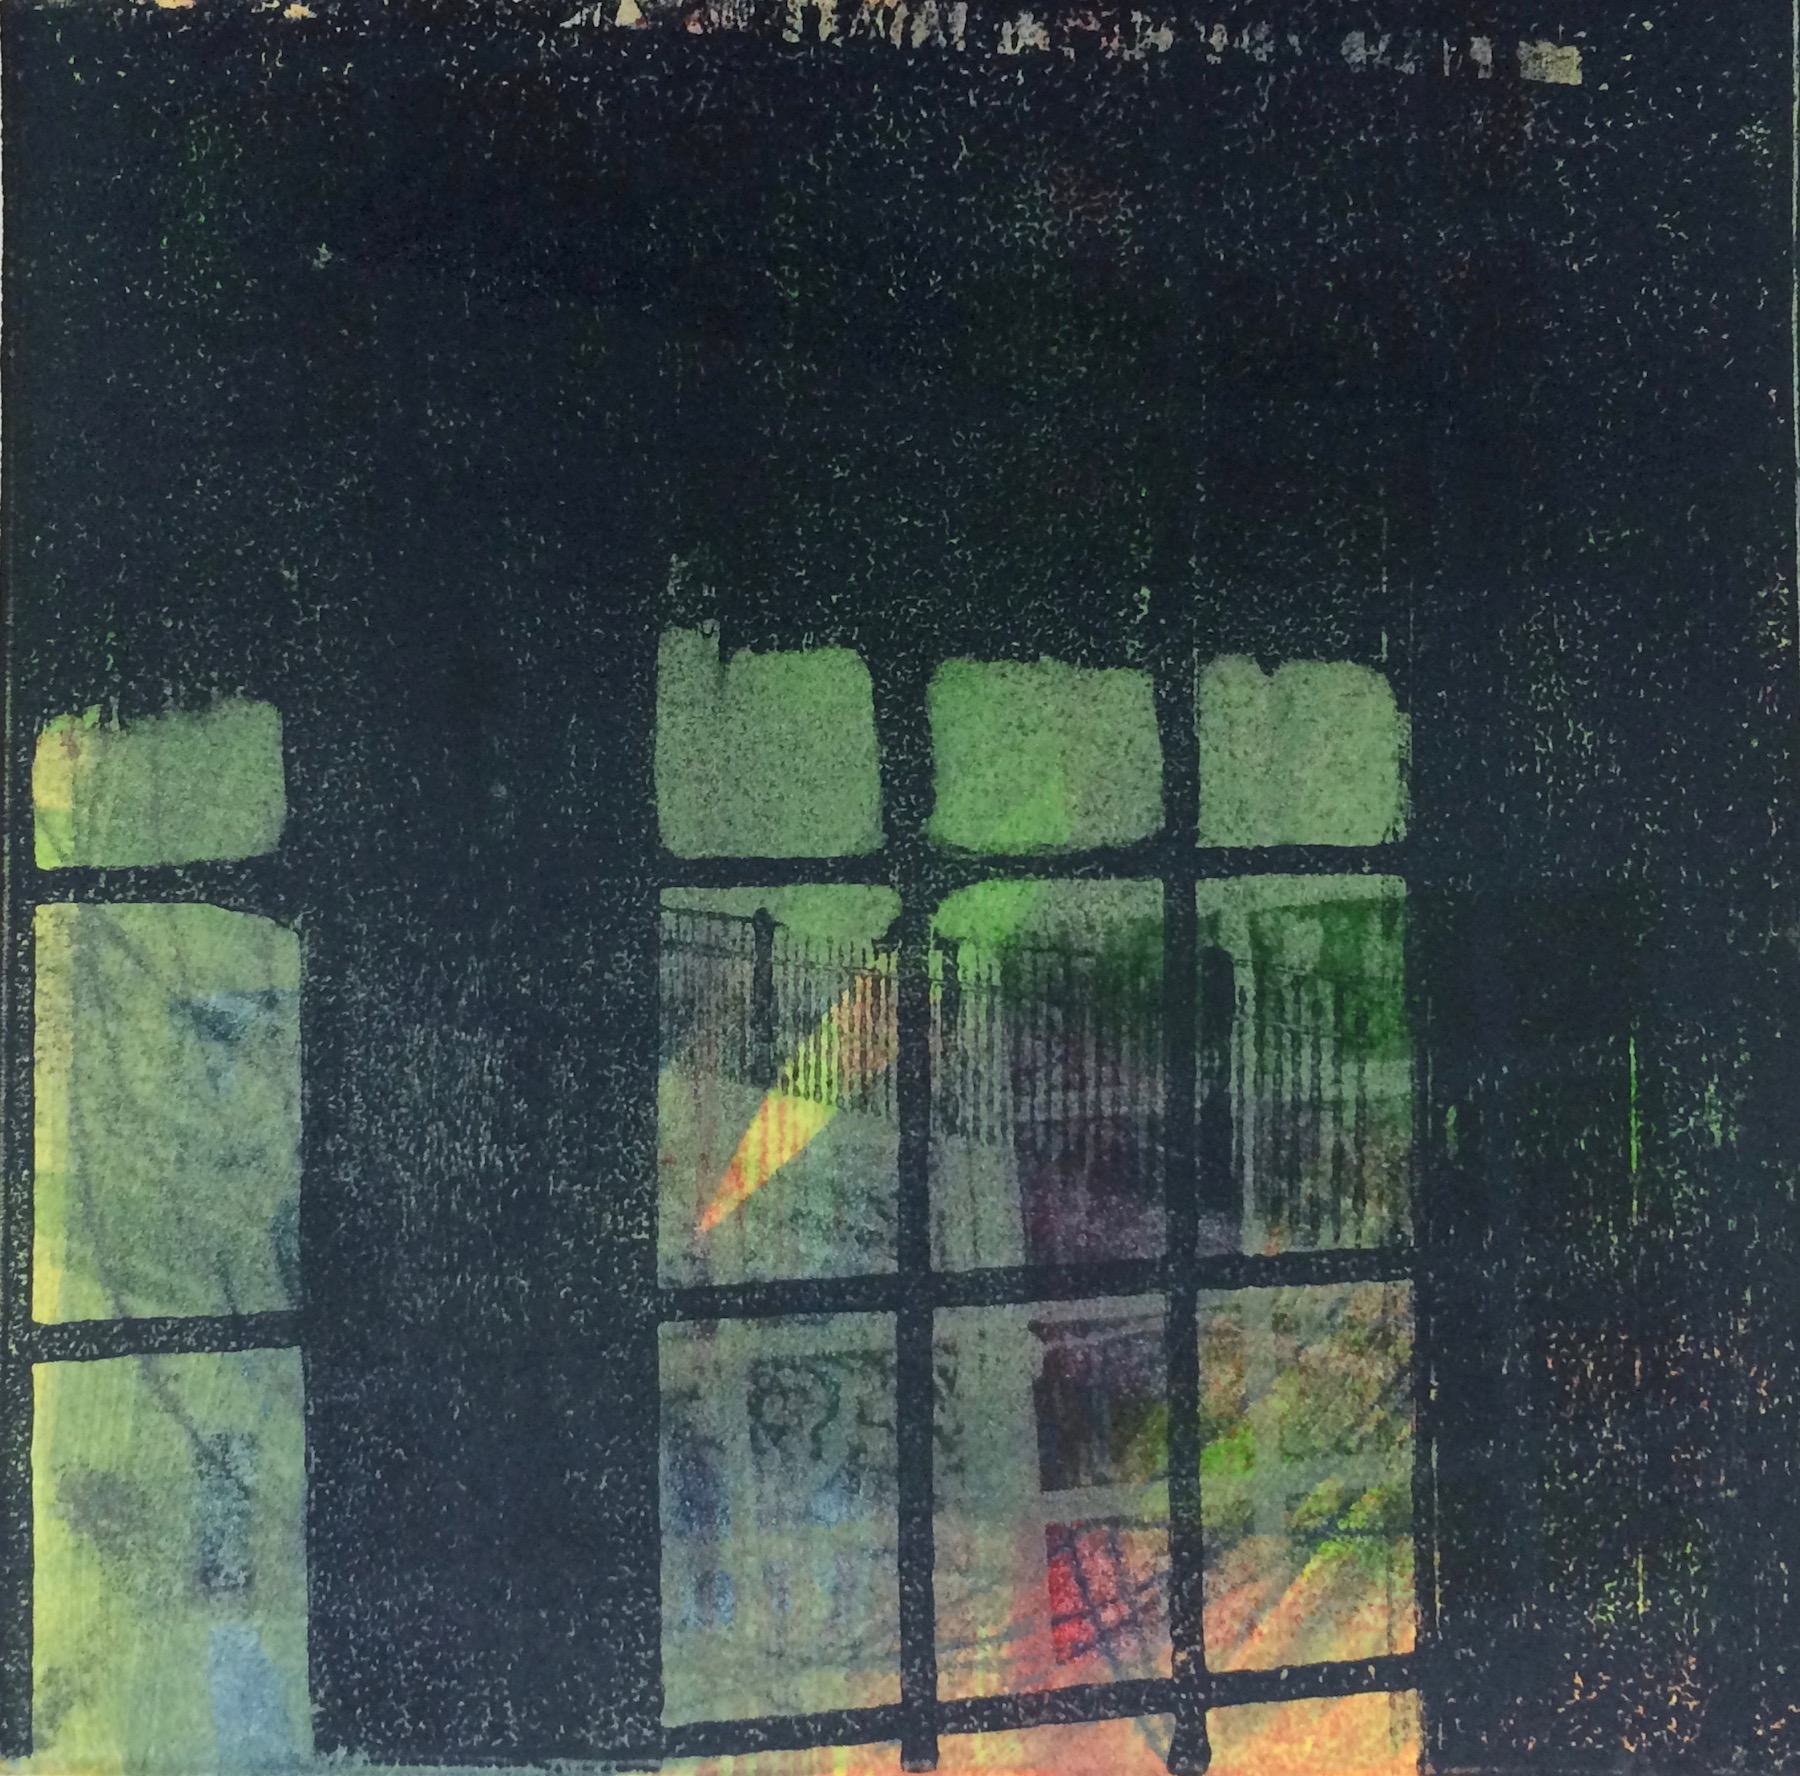 """Window Reflections"", monoprint, 16"" x 15.5"", $300 (framed)"